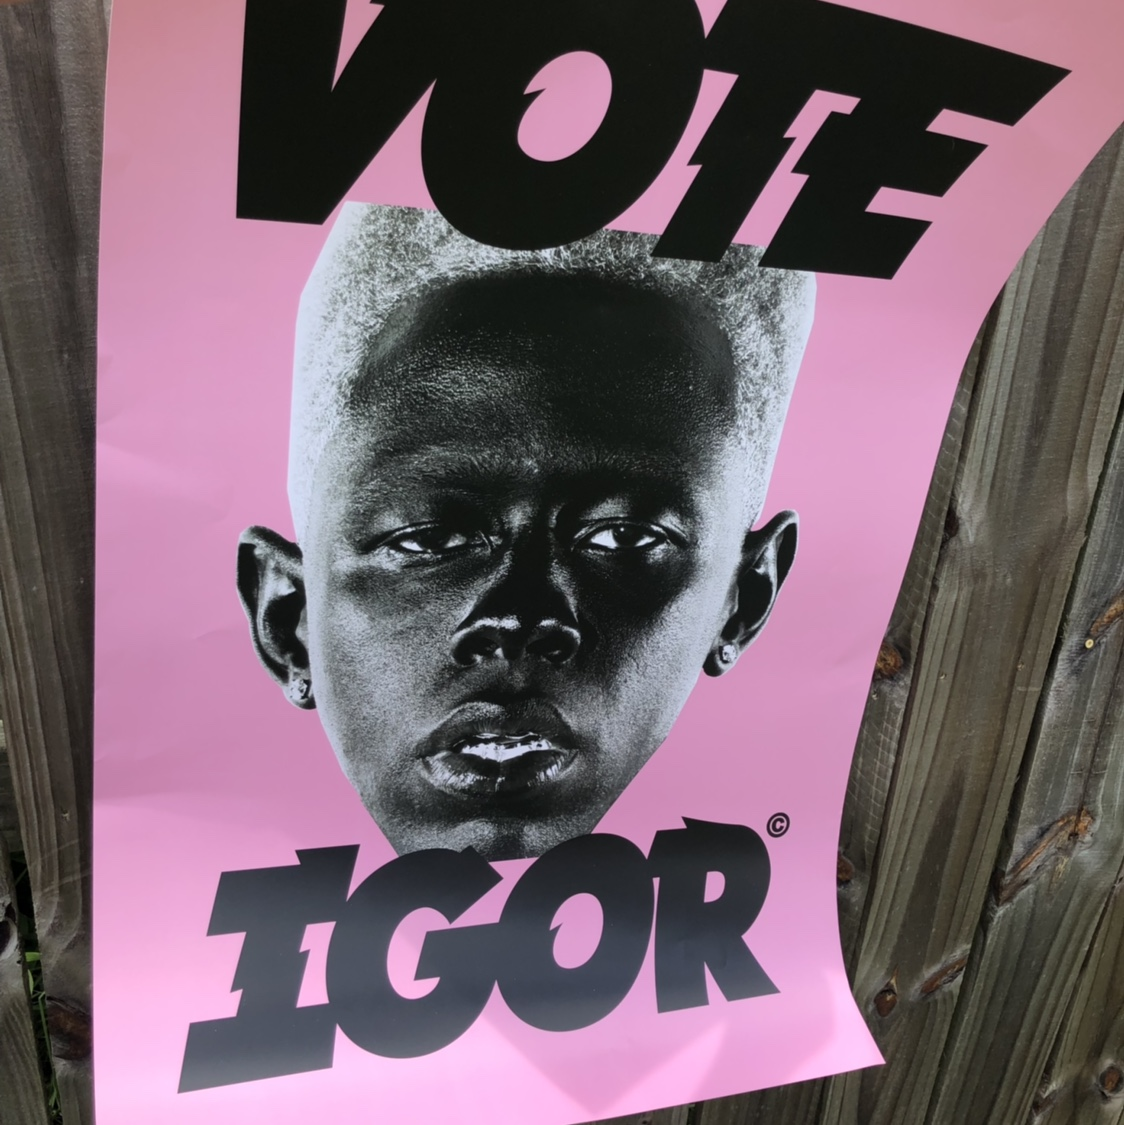 authentic golf wang igor poster only a lil bit